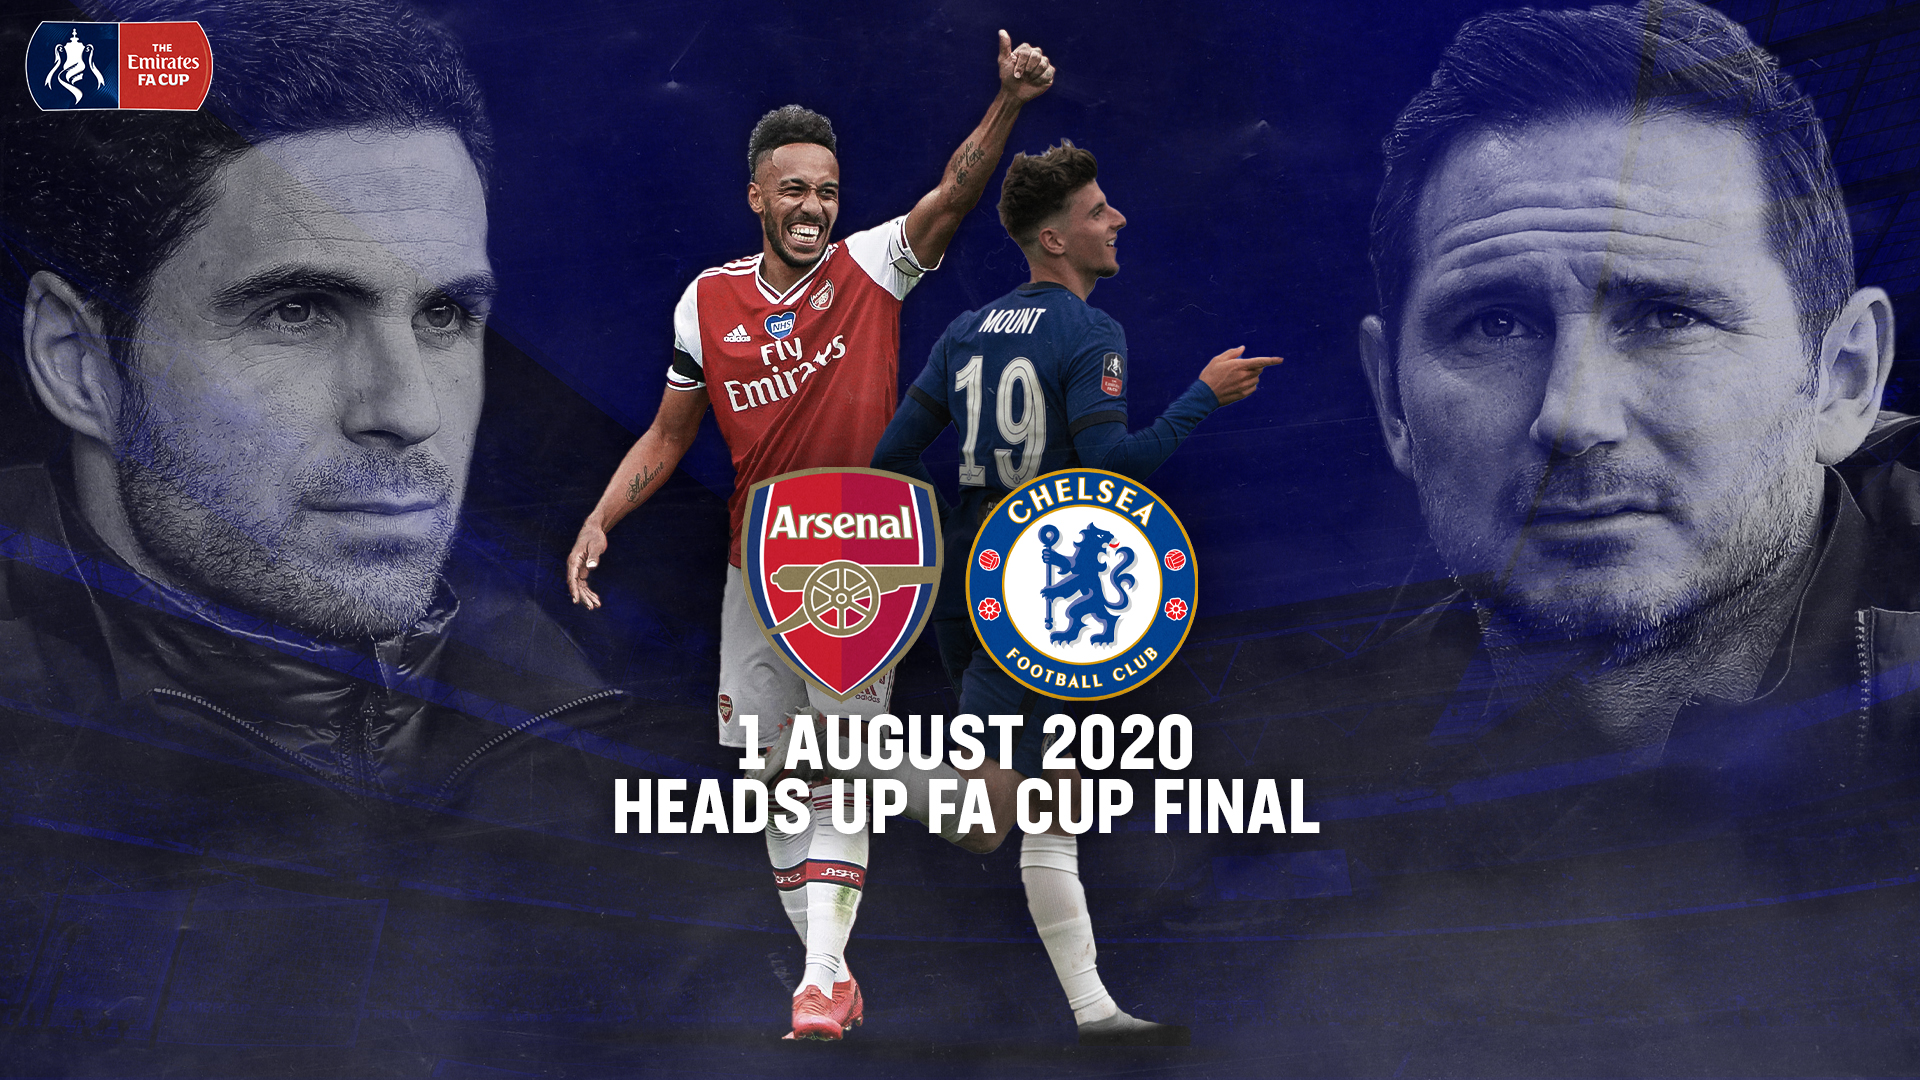 Arsenal vs Chelsea: Match Preview - 1 Aug 2020